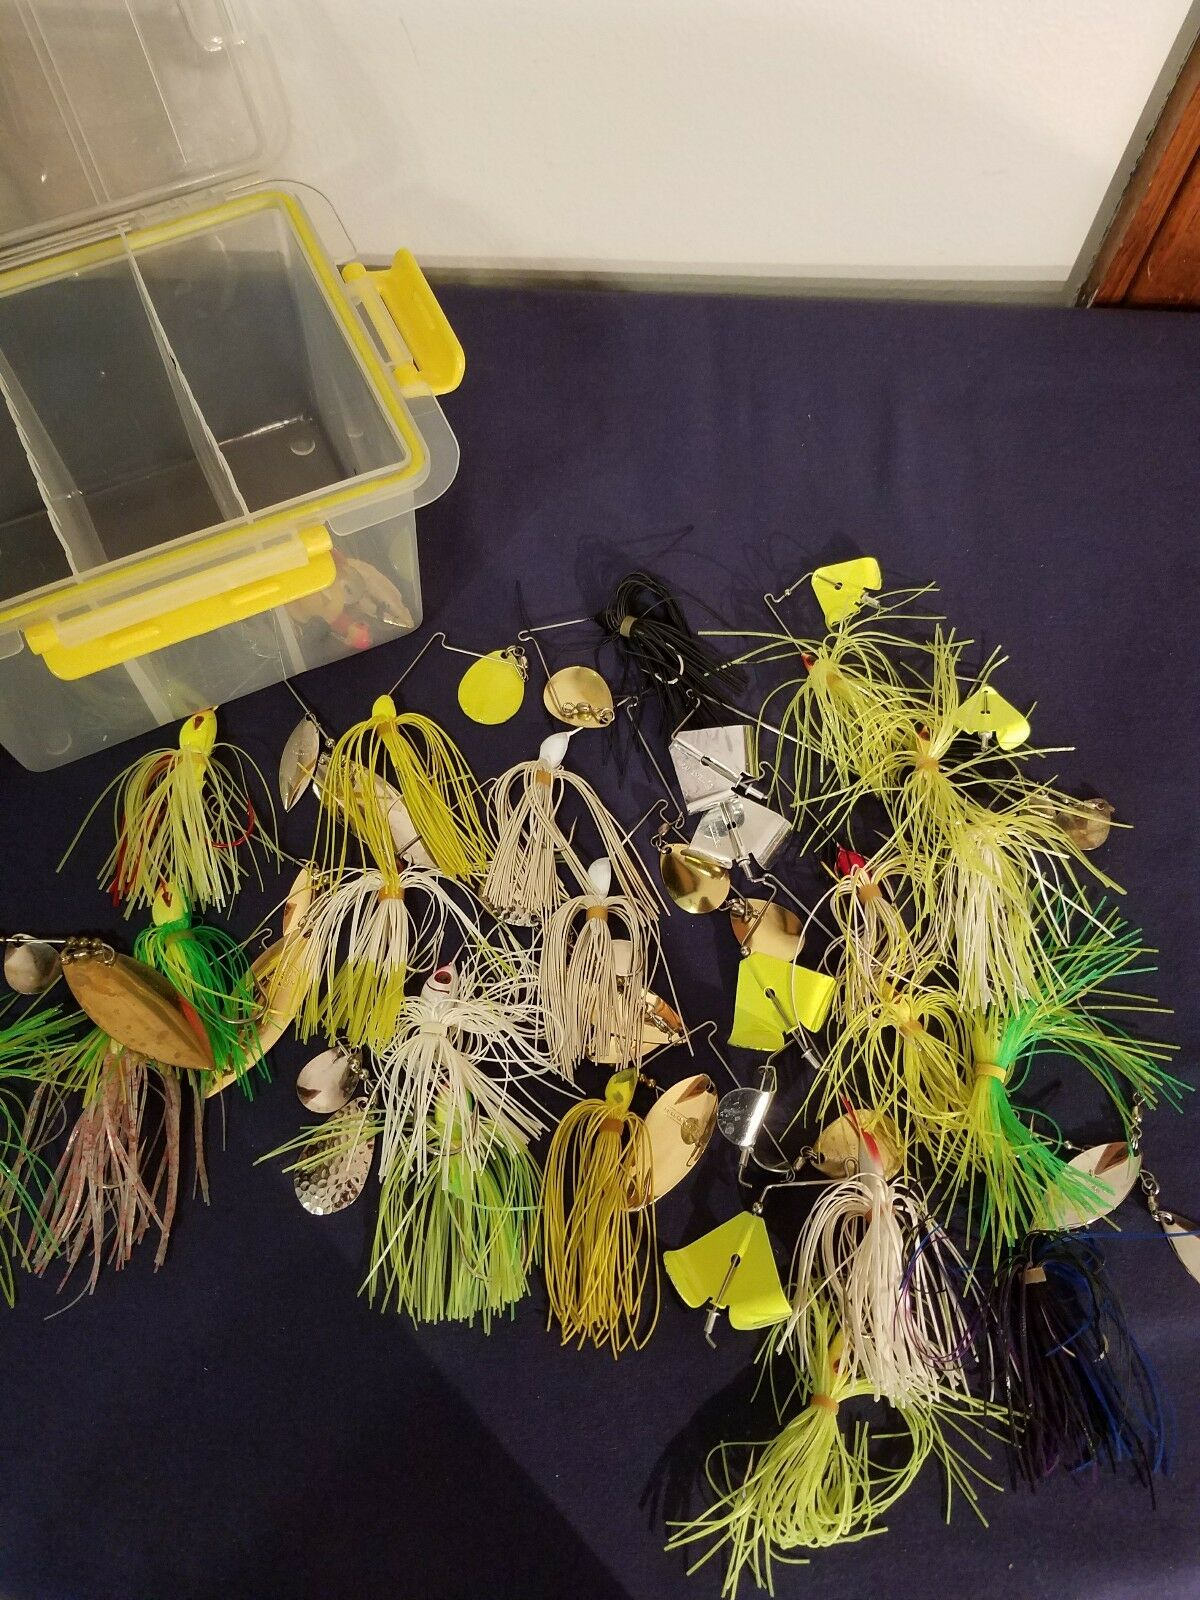 20 PCS Fishing Lures plus box  holder  fast delivery and free shipping on all orders